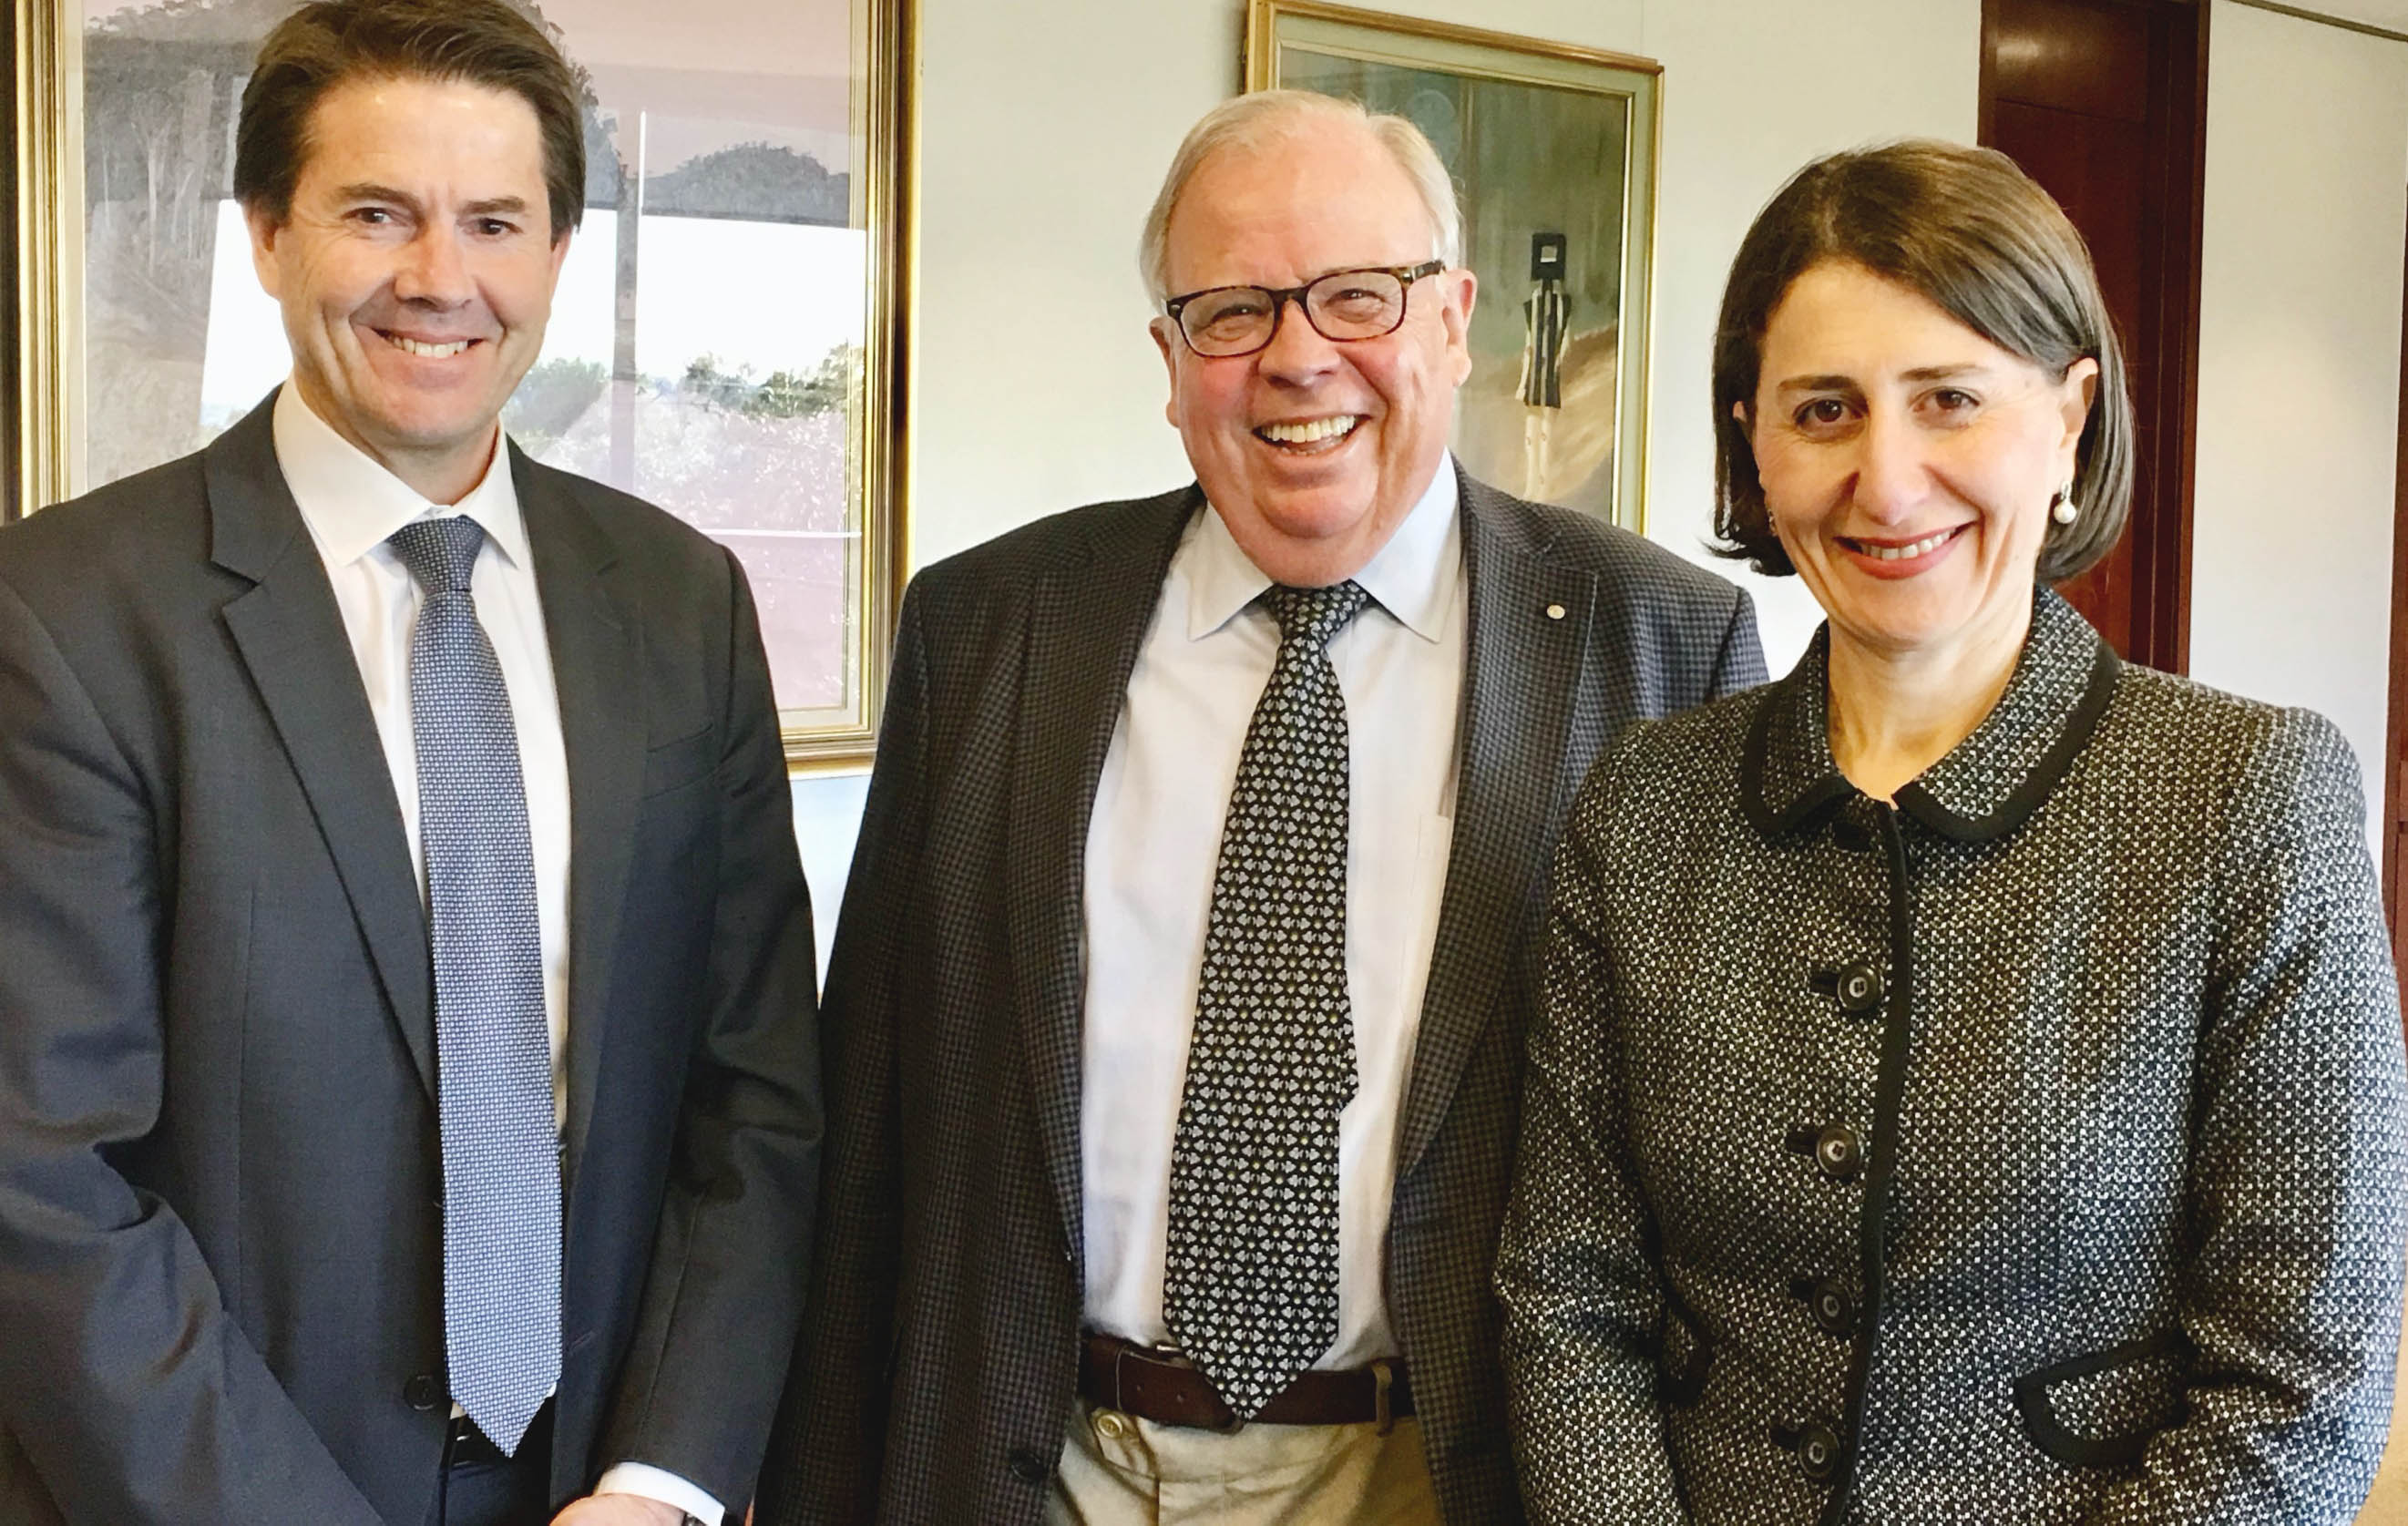 Right to left: Minister Anderson, Building Commissioner David Chandler, Premier Gladys Berejiklian